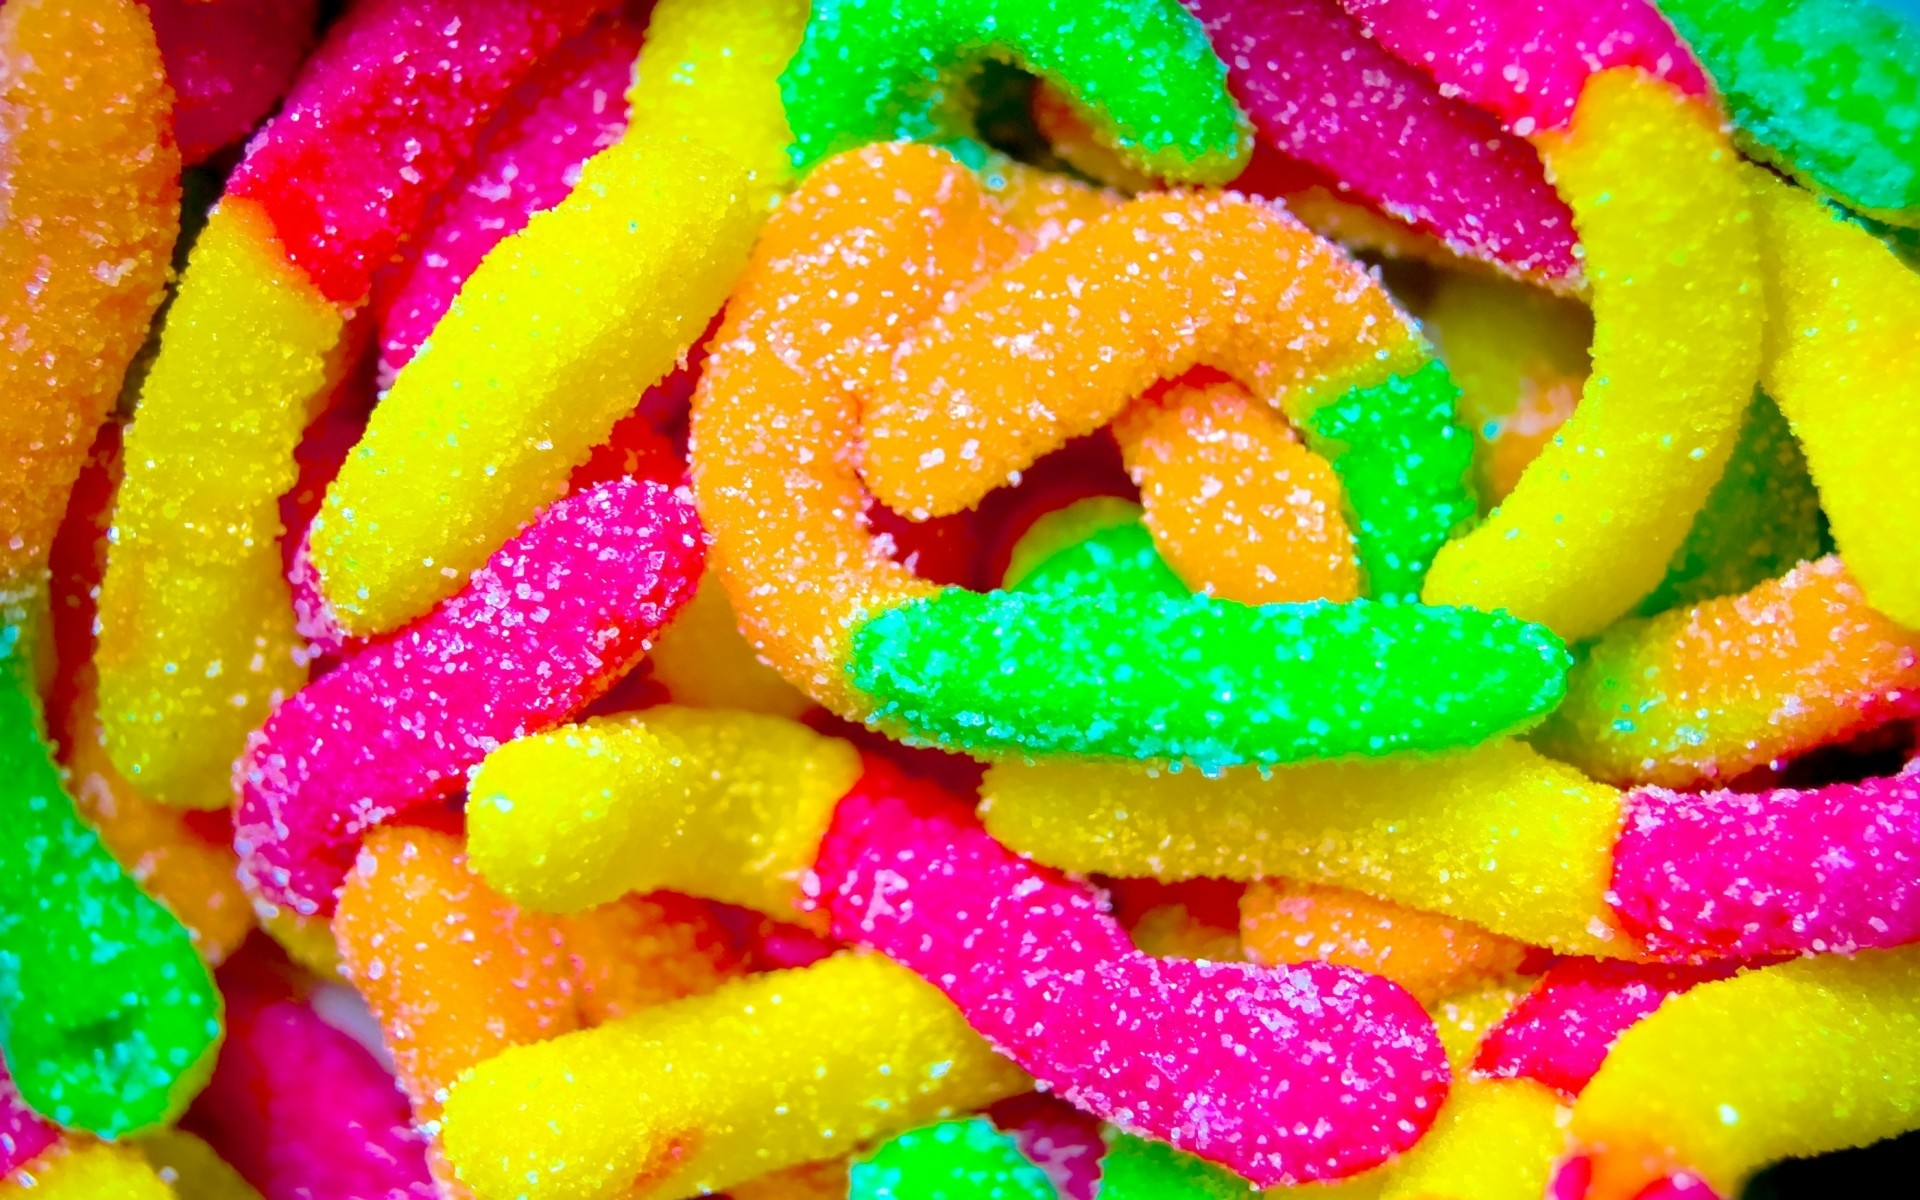 Bright Neon Backgrounds Neon wallpaper background